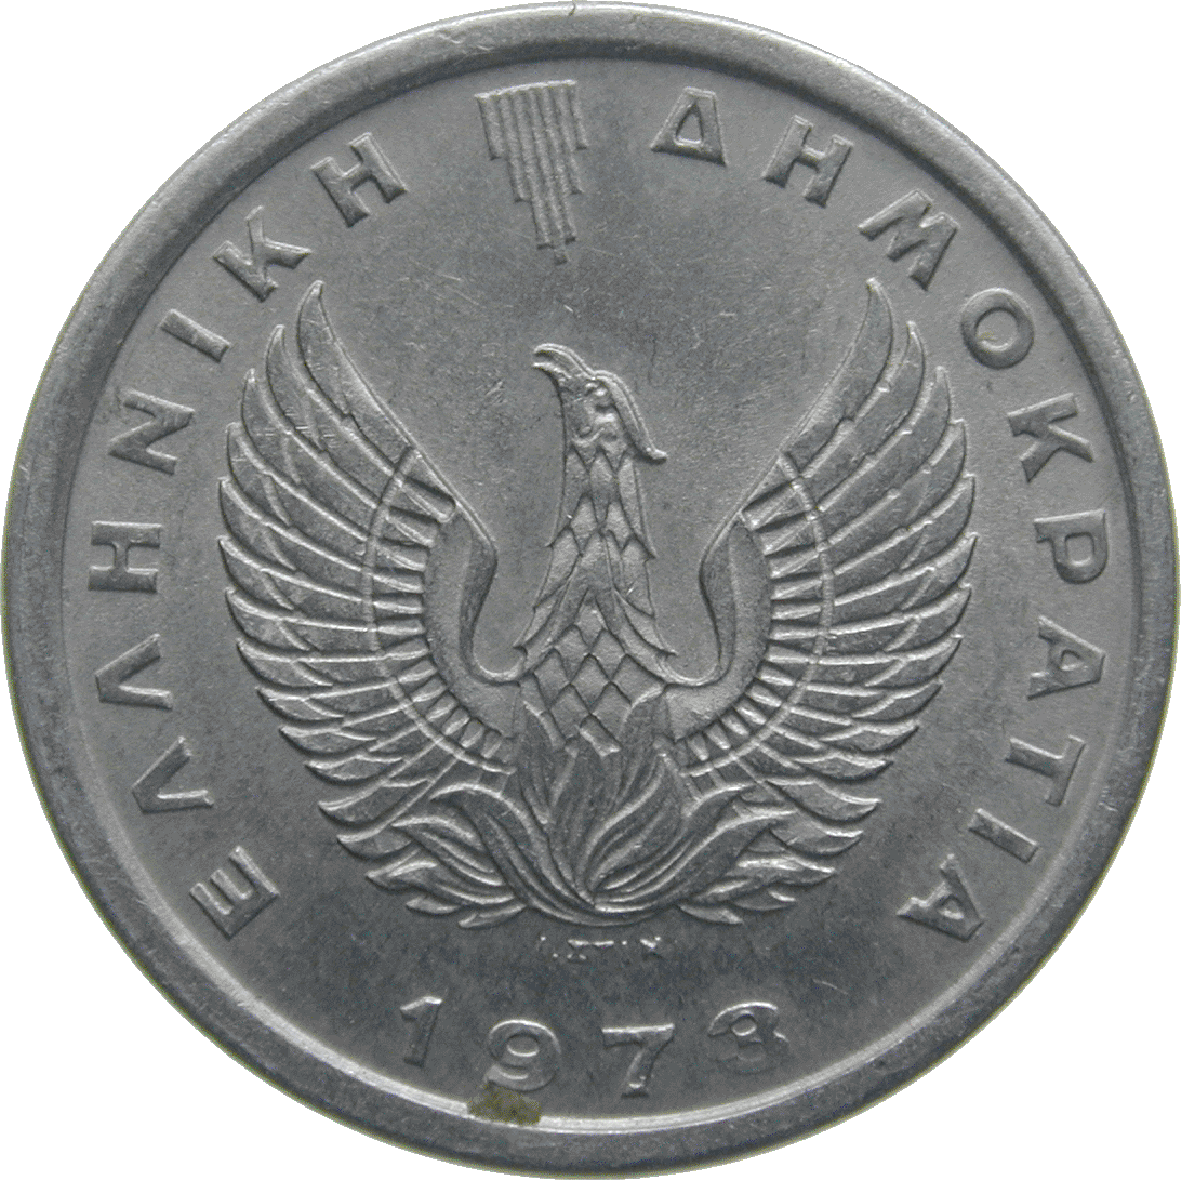 Republic of Greece, 10 Lepta 1973 (obverse)